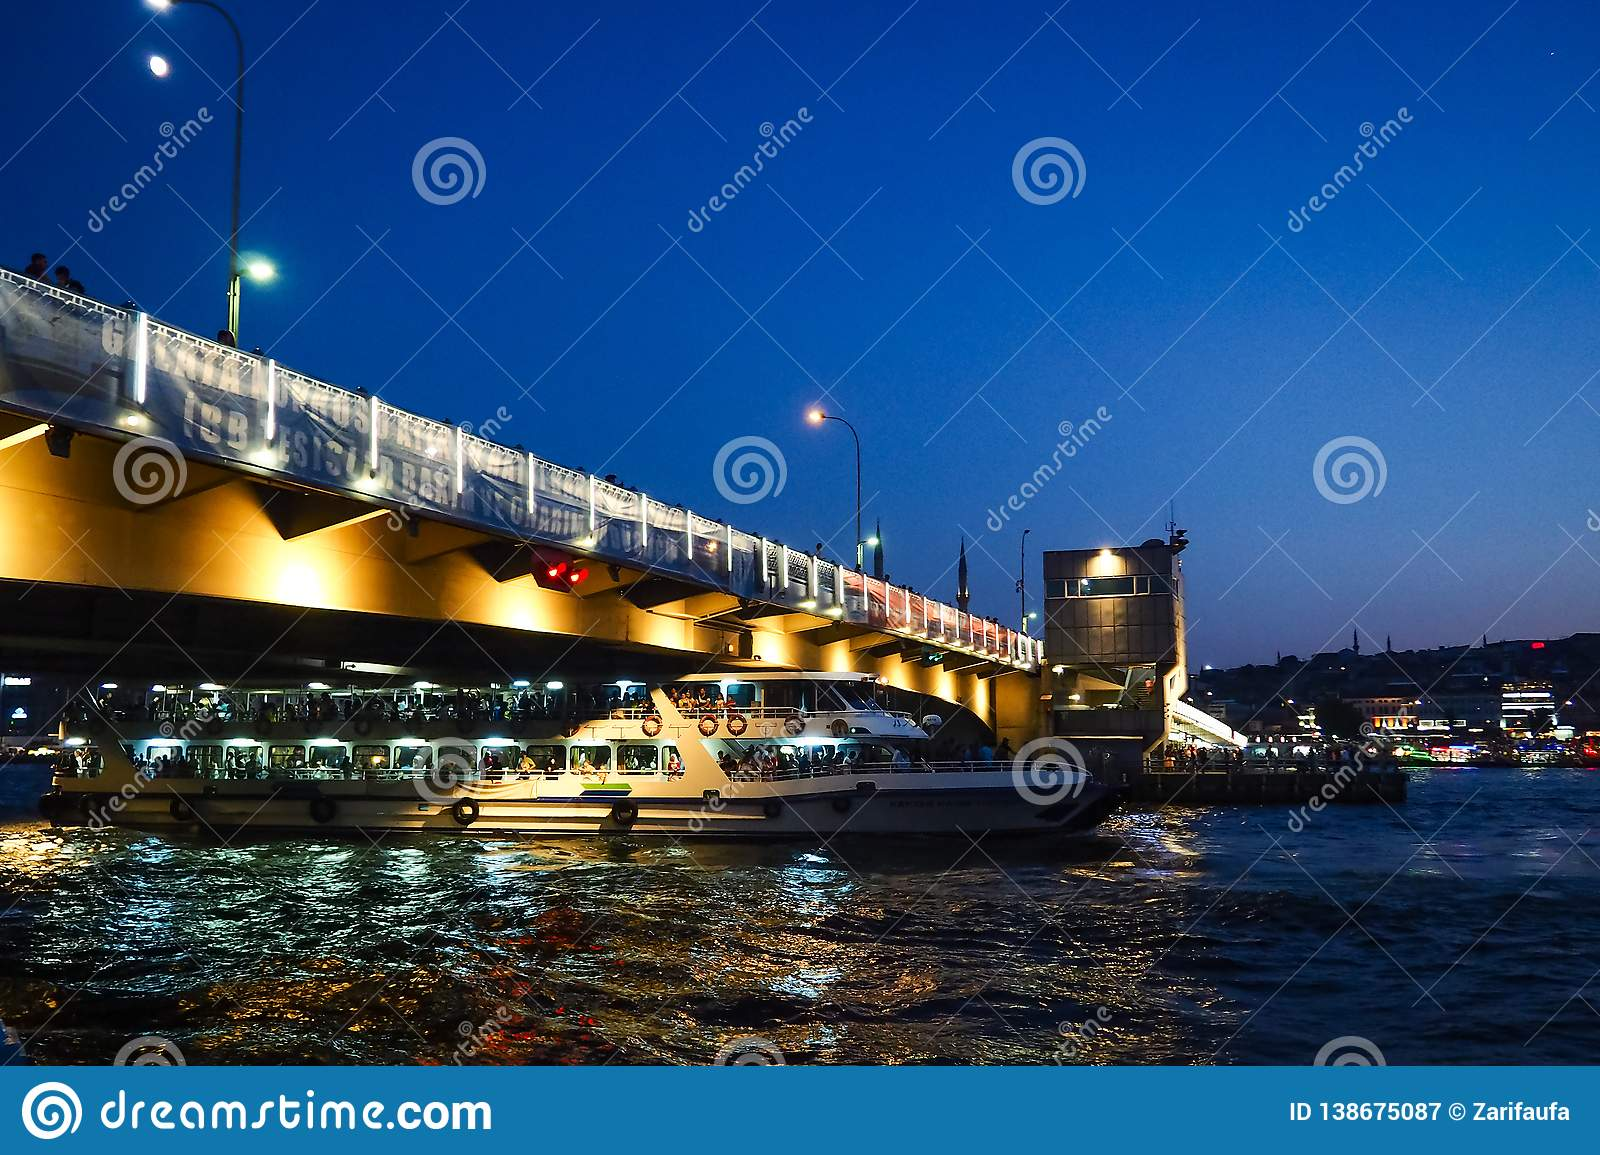 ISTANBUL, TURKEY - AUGUST 21, 2018: ferry under Galata bridge